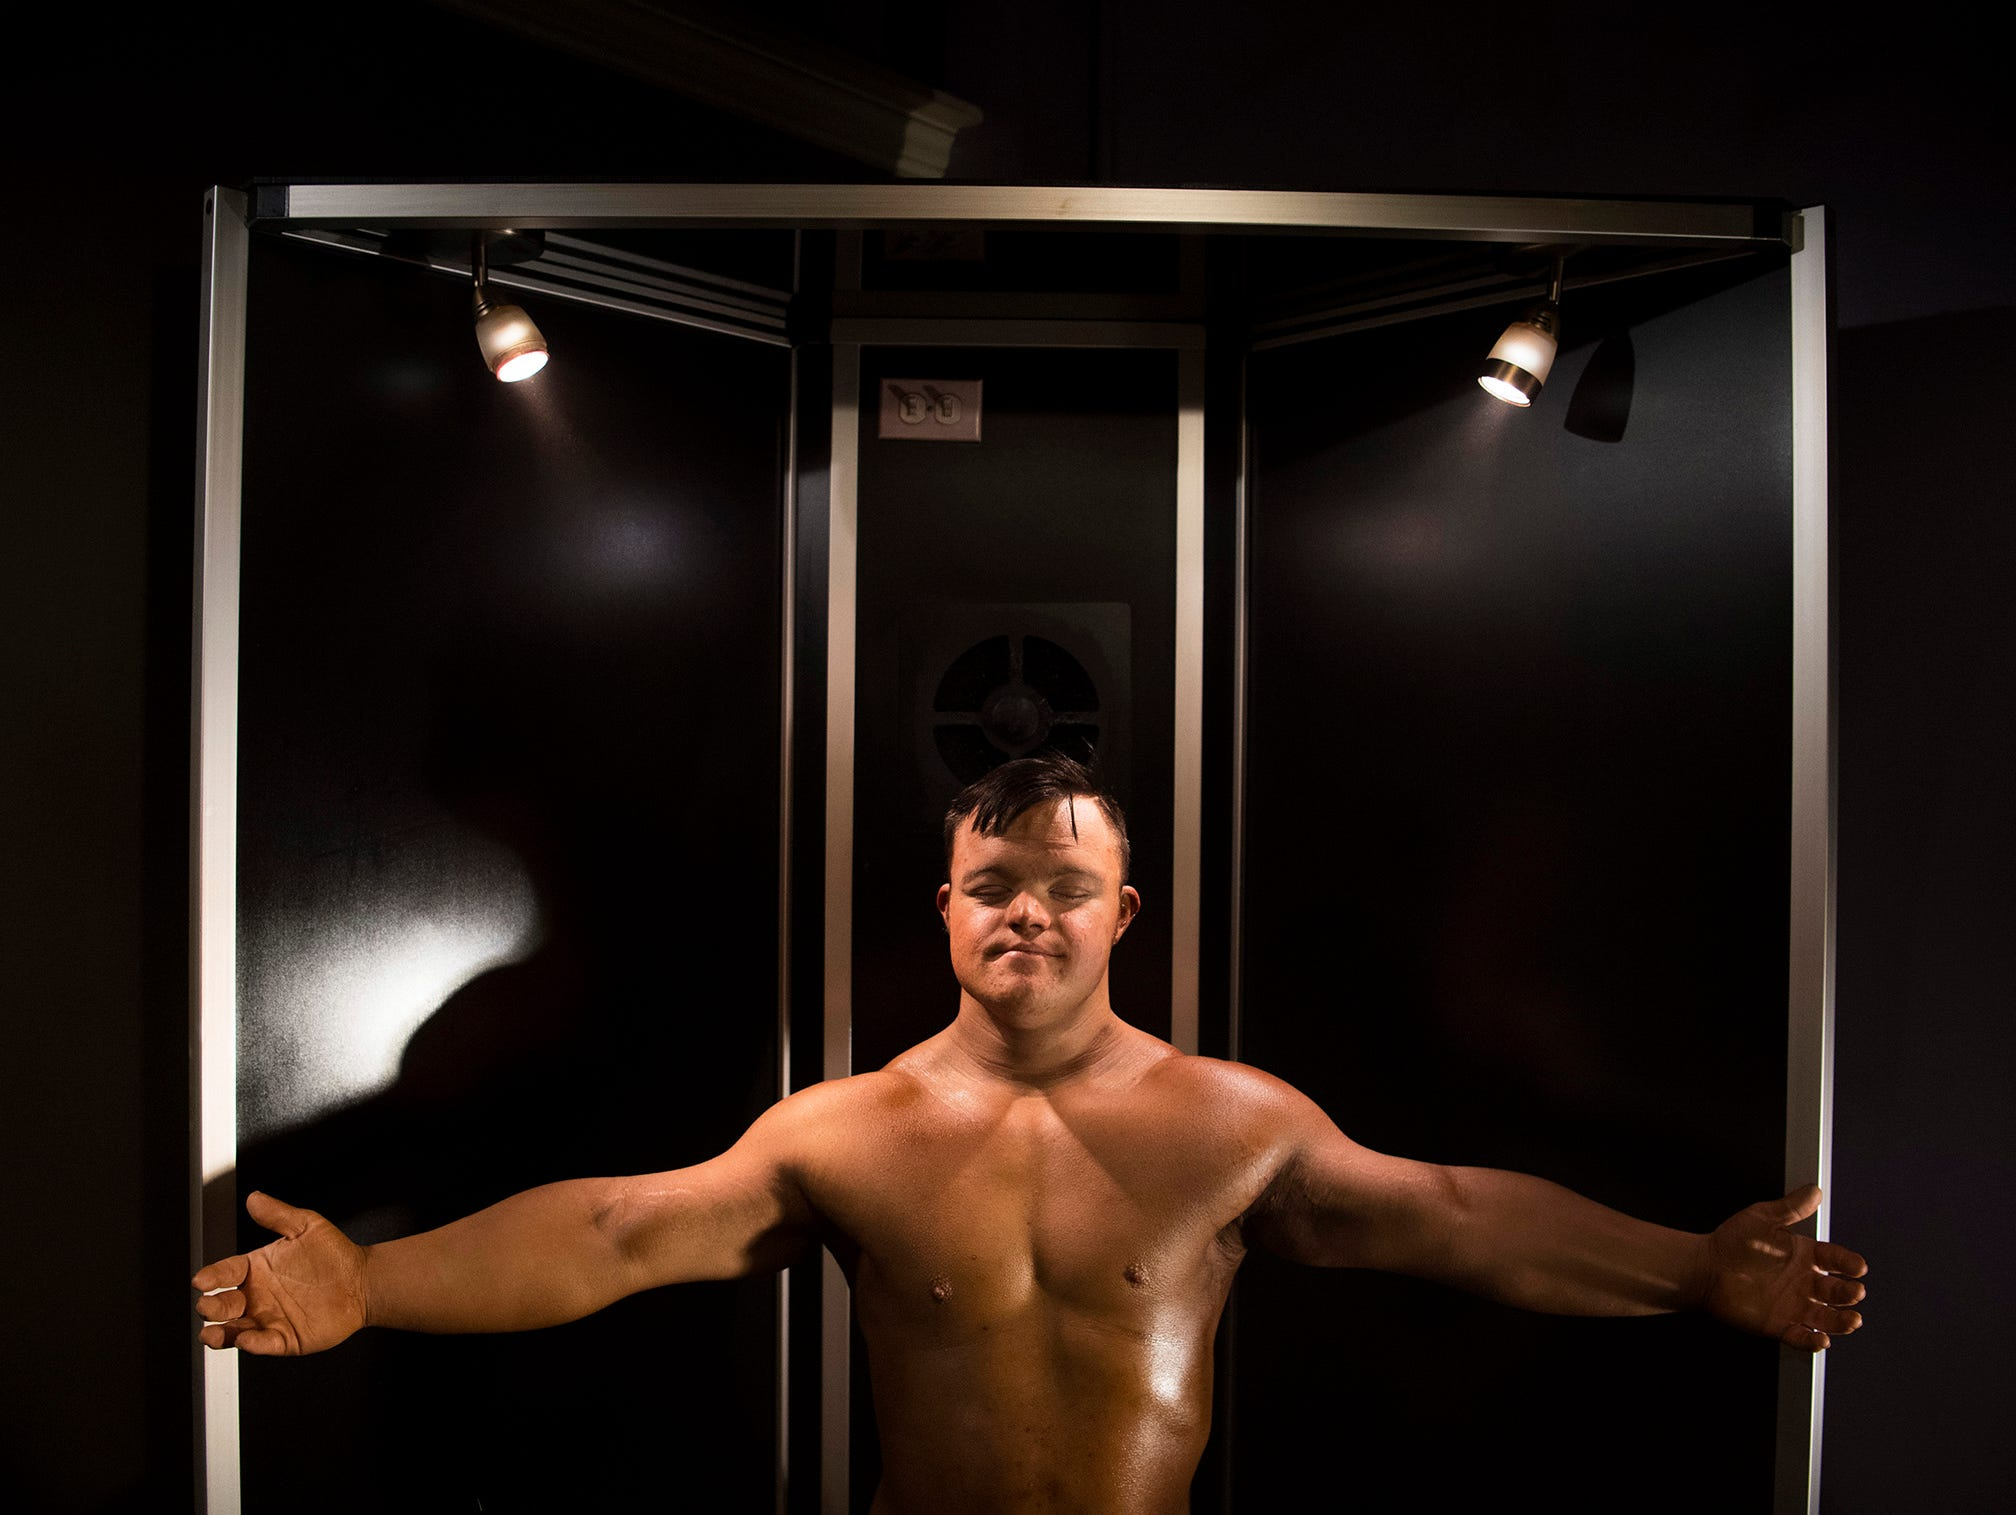 Collin Clarke receives the second coat of a spray tan applied by Shannon Tichenor, owner of Salon T in Newburgh, Ind., the day before his Indiana Muscle competition in March of 2018. No bodybuilder competes without a good spray tan which helps accentuate their muscles for the judges and audience as they compete.